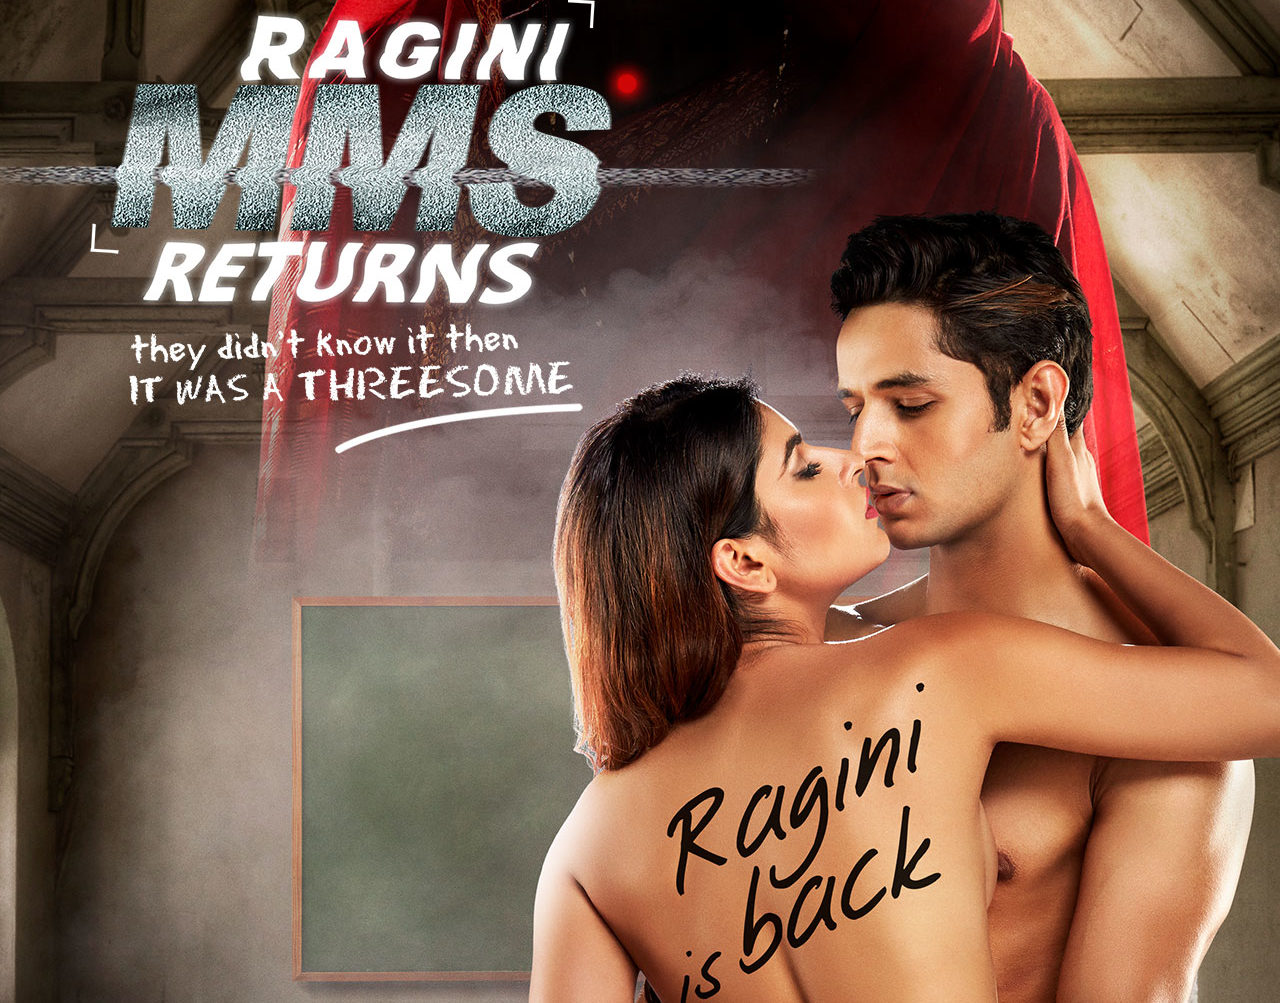 Check out: Ragini MMS Returns poster